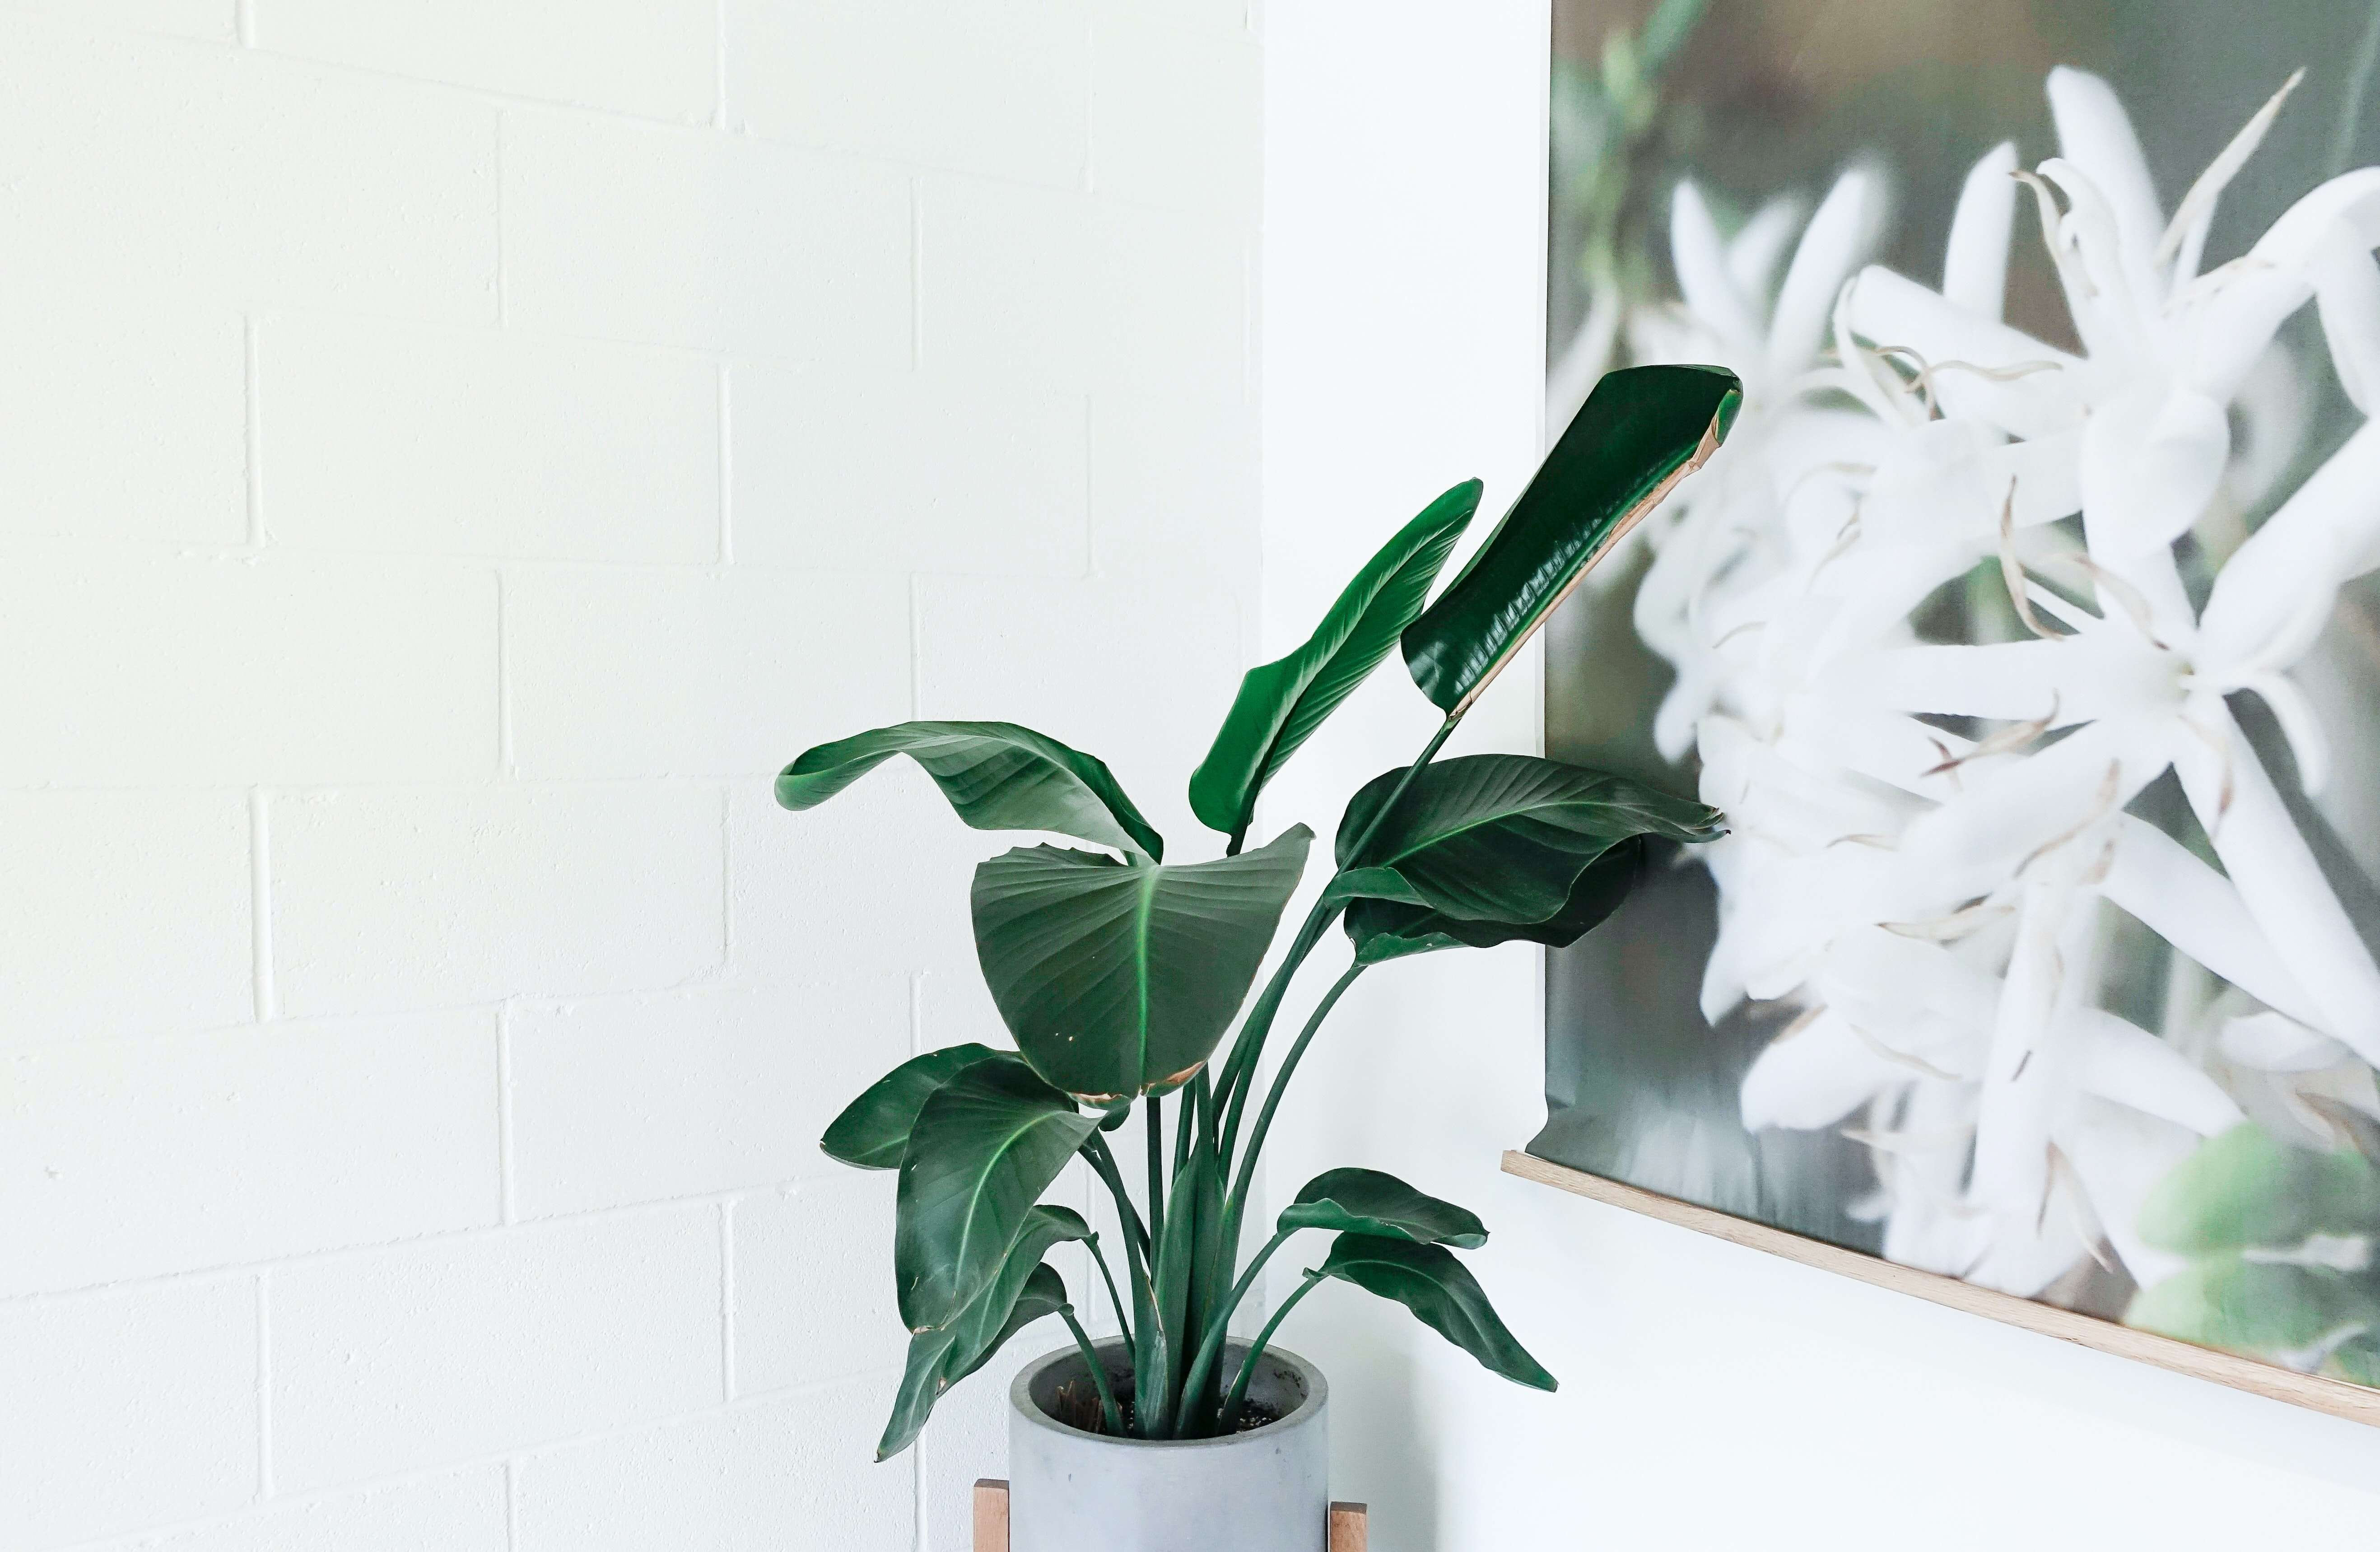 green leafed plant on white ceramic vase